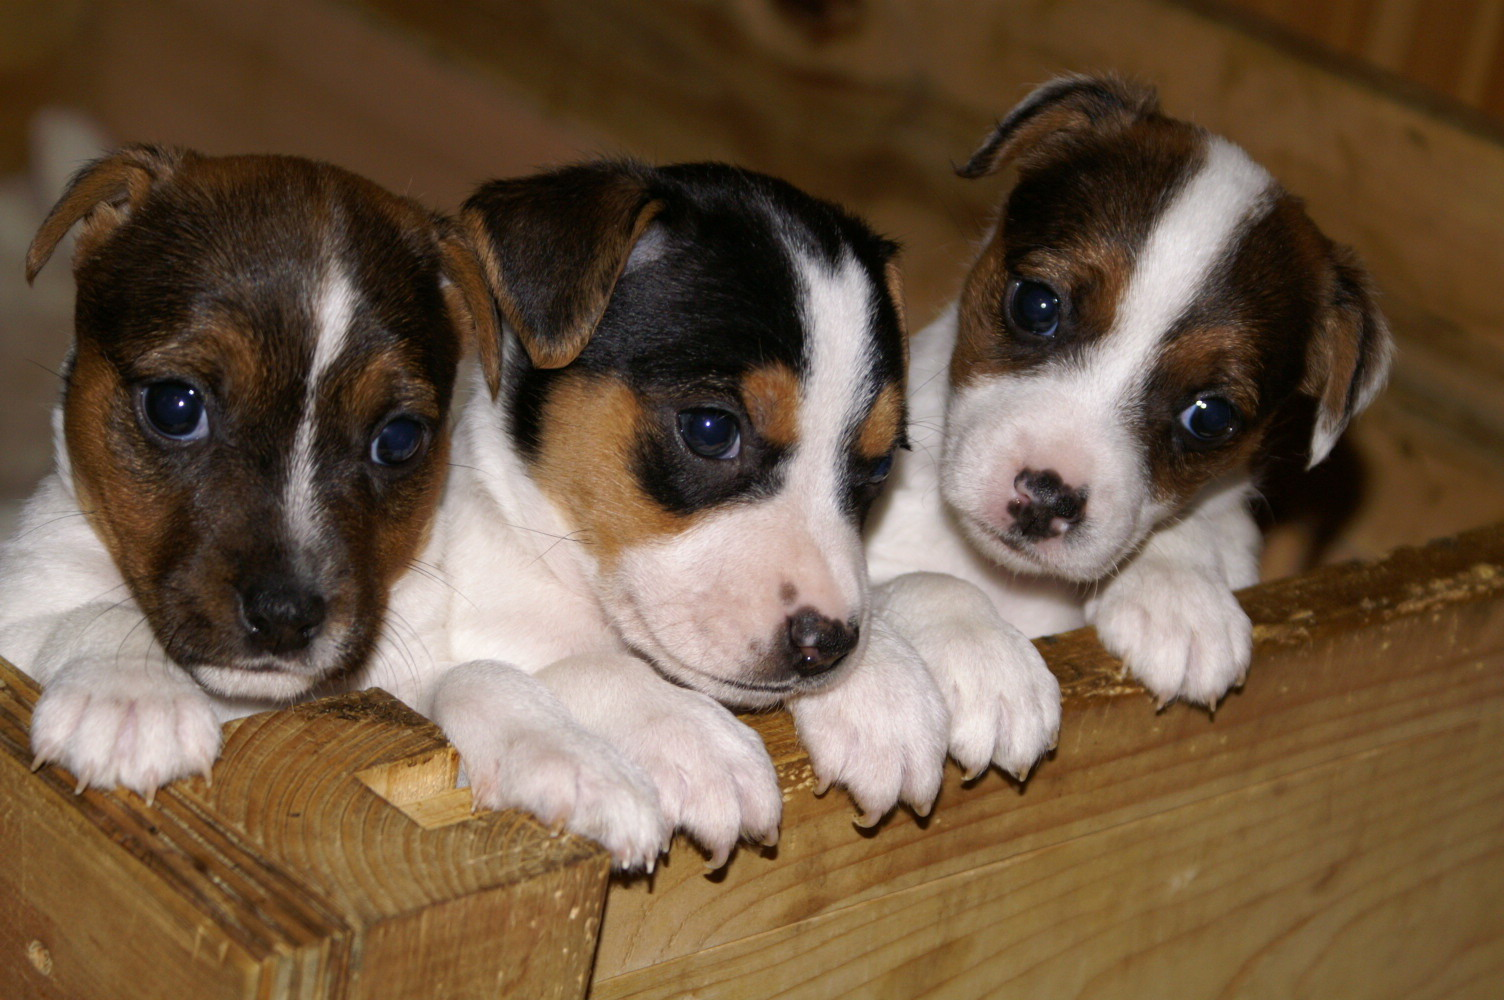 Jack Russell Terrier Puppies: Jack Jack Russell Terrier Puppies Breed